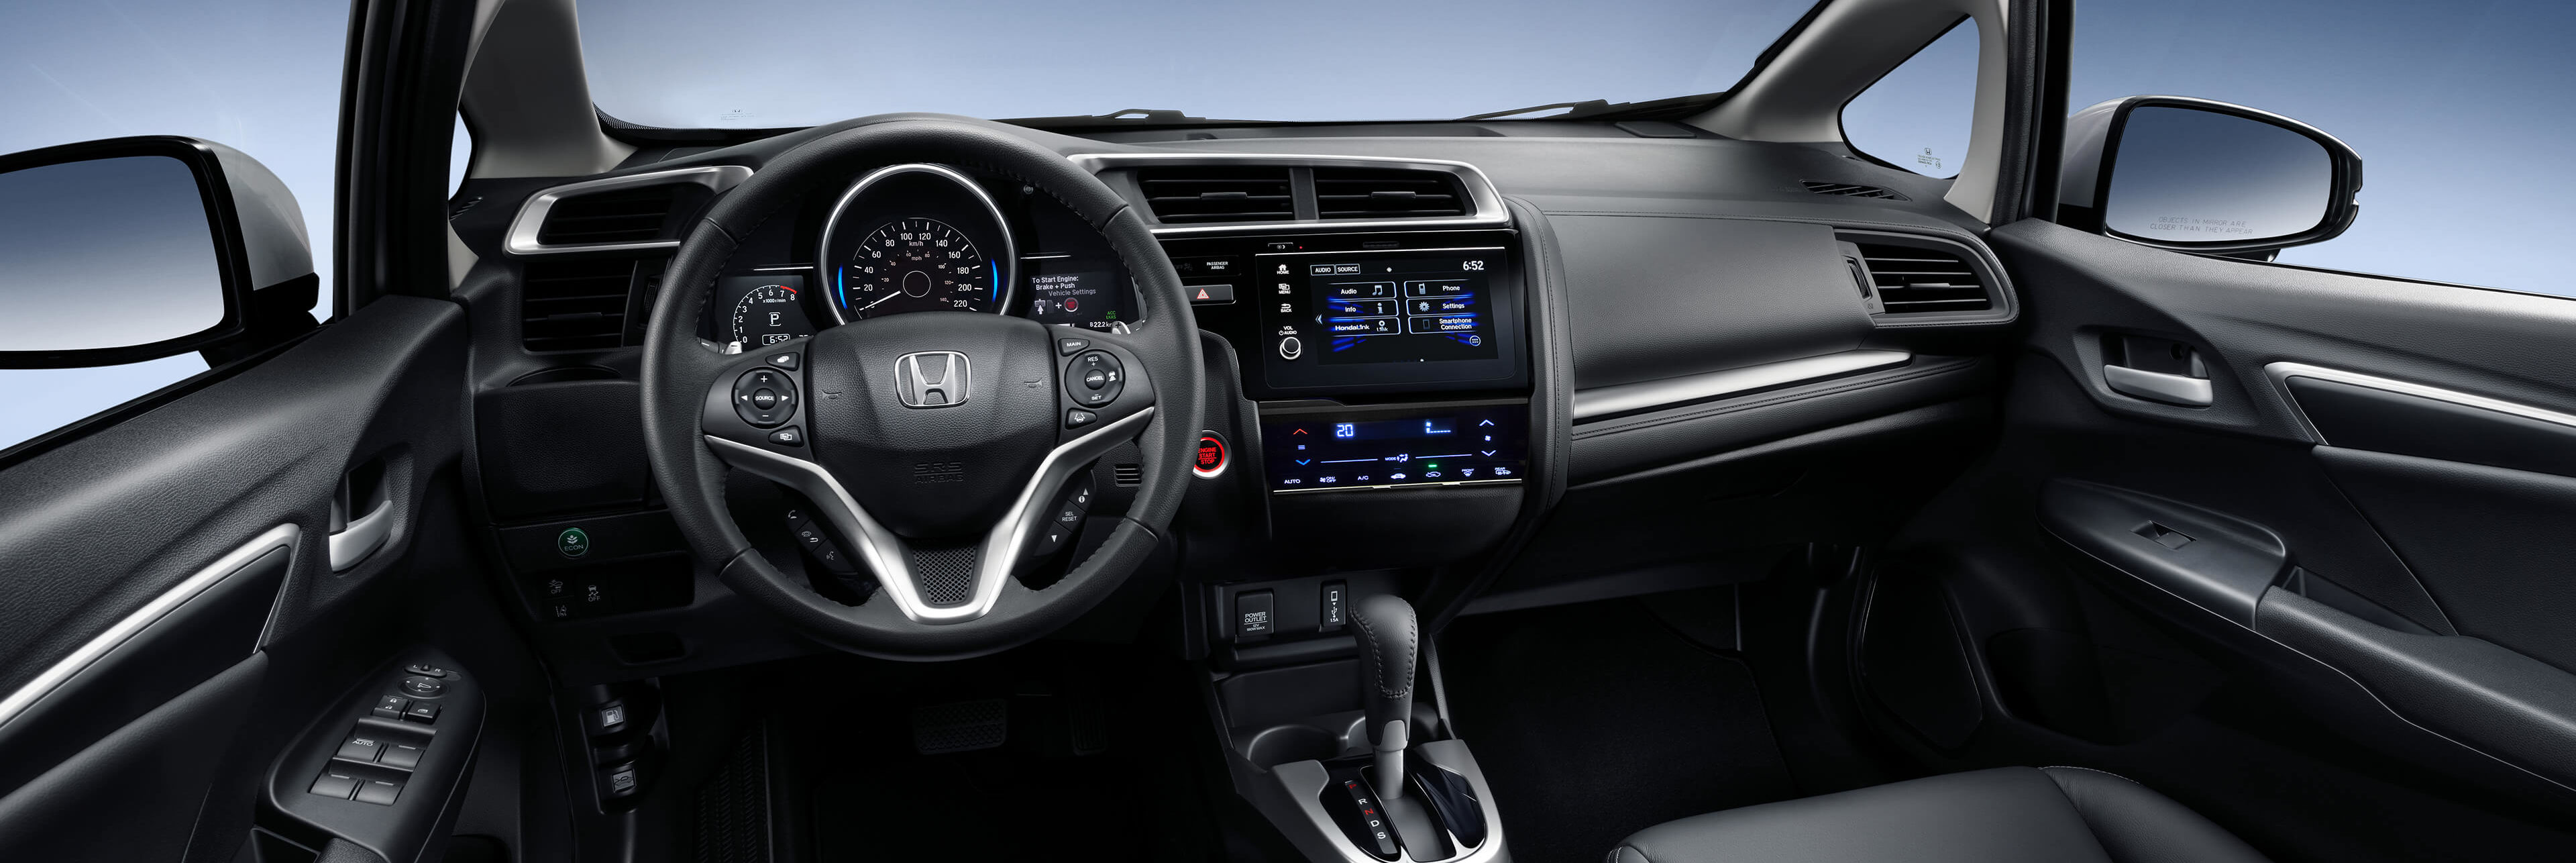 Honda Fit Interior- Steering wheel and front console